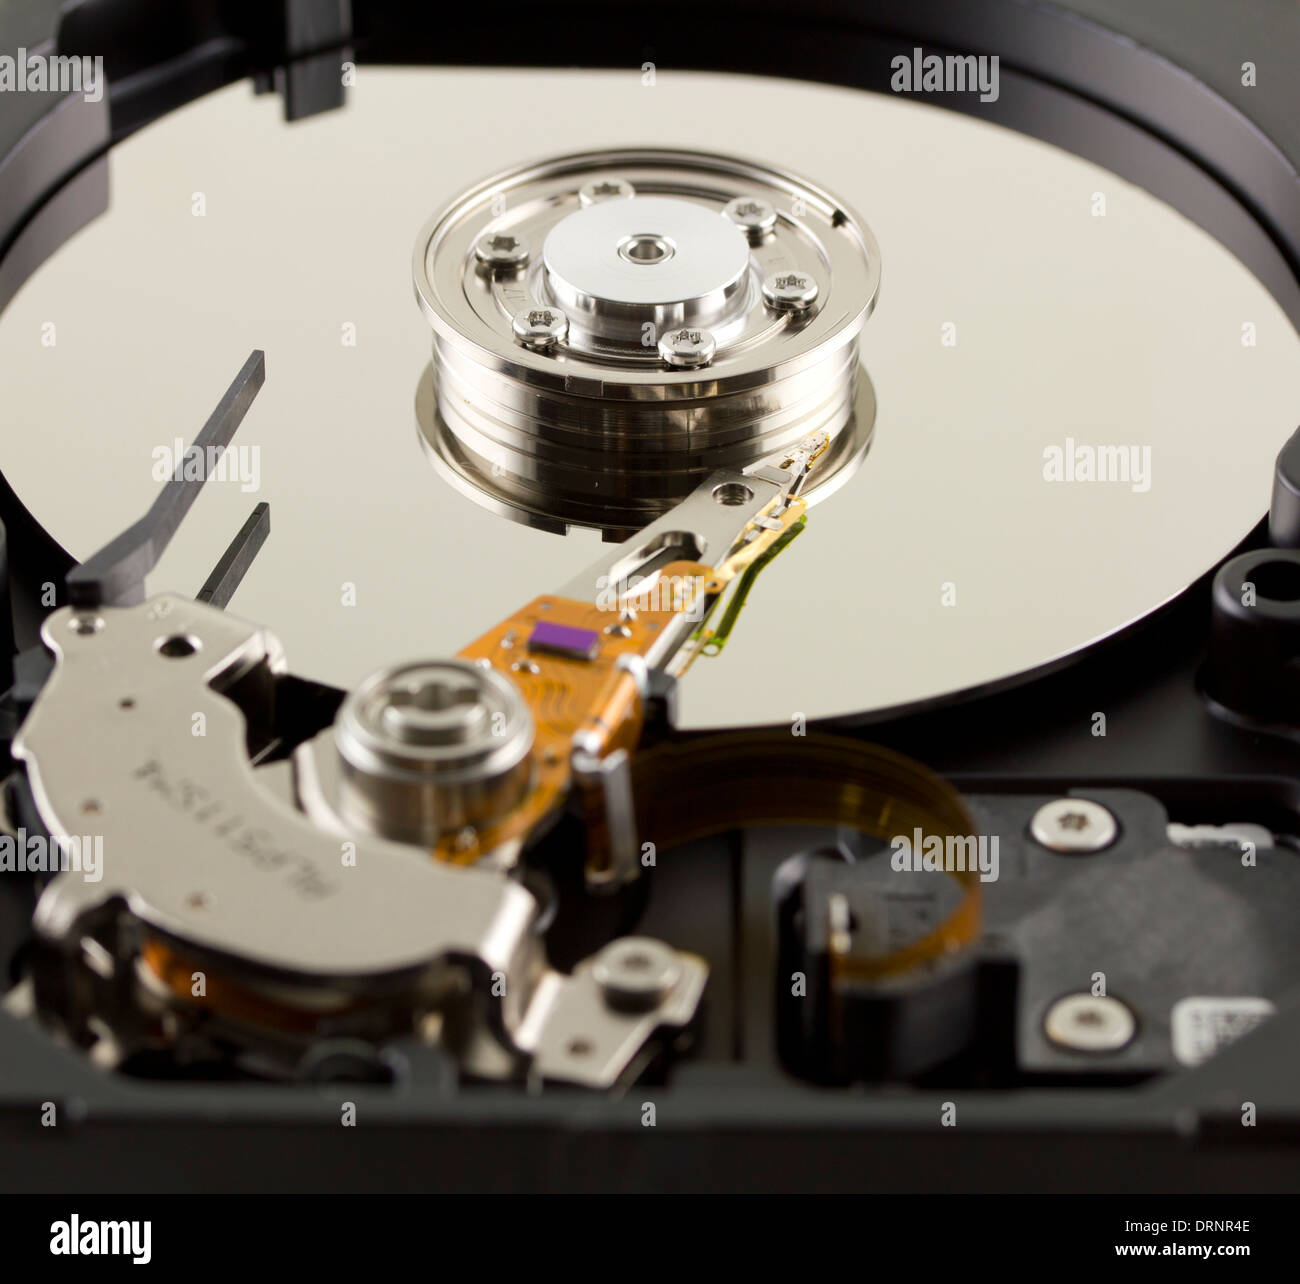 Hard disk from within close up - Stock Image